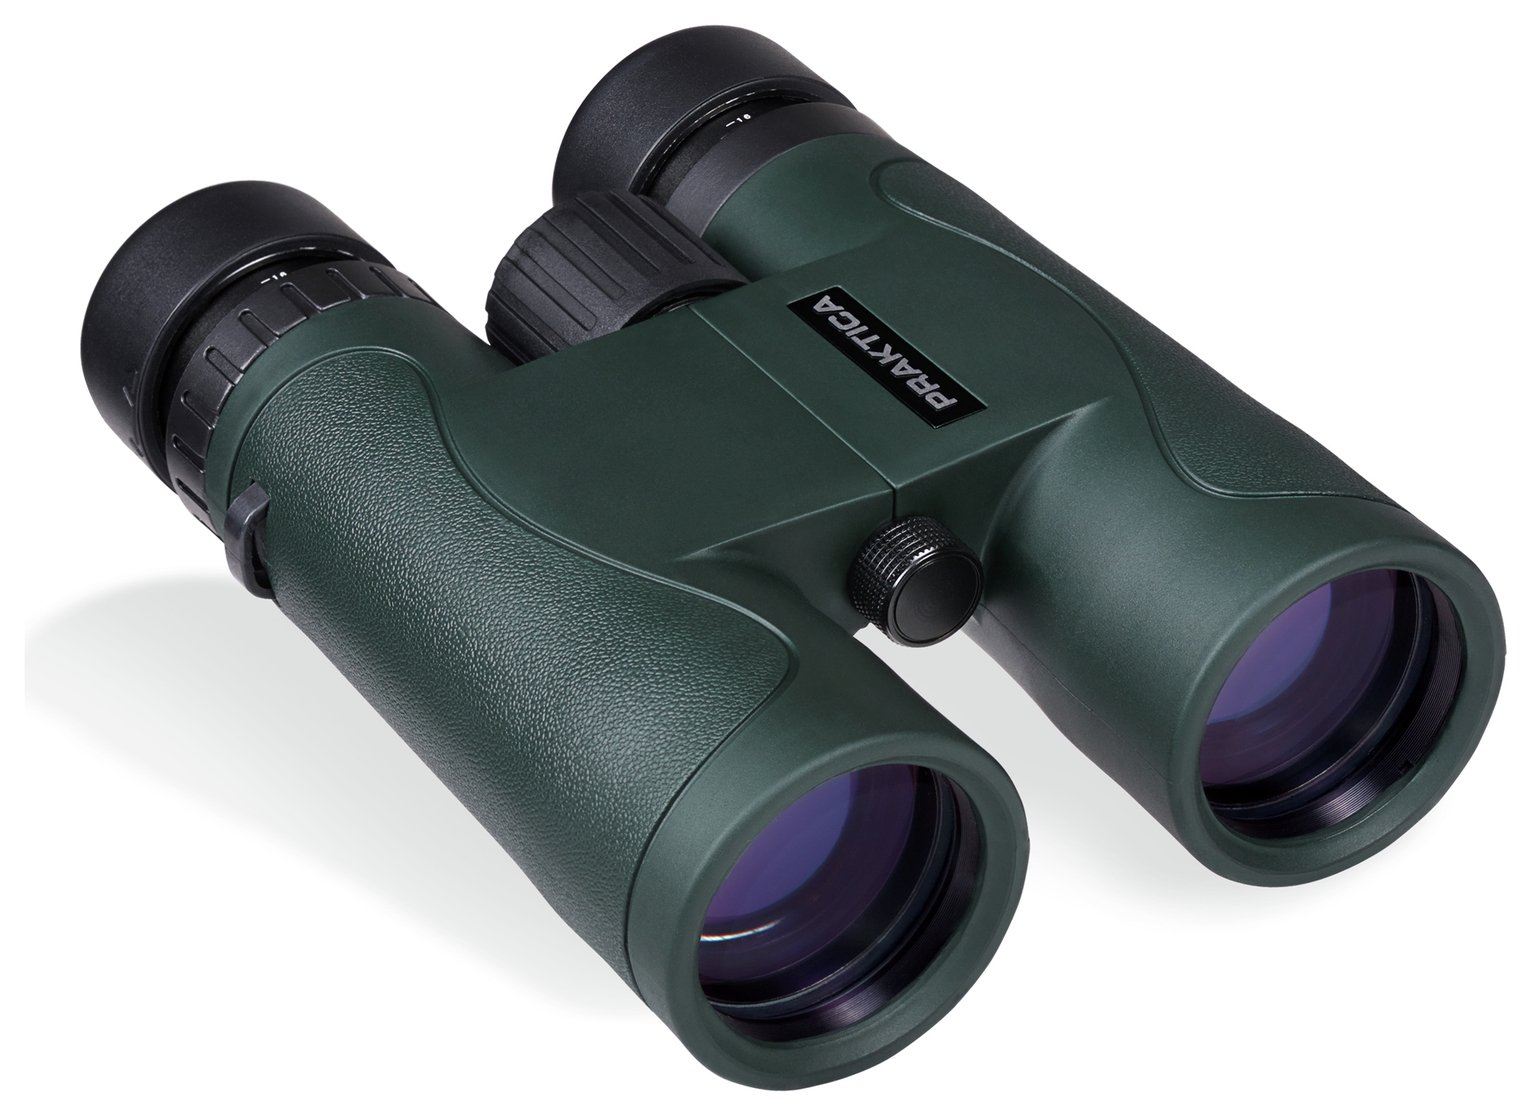 Praktica - Binoculars - Multi-Coated Waterproof 8x42mm